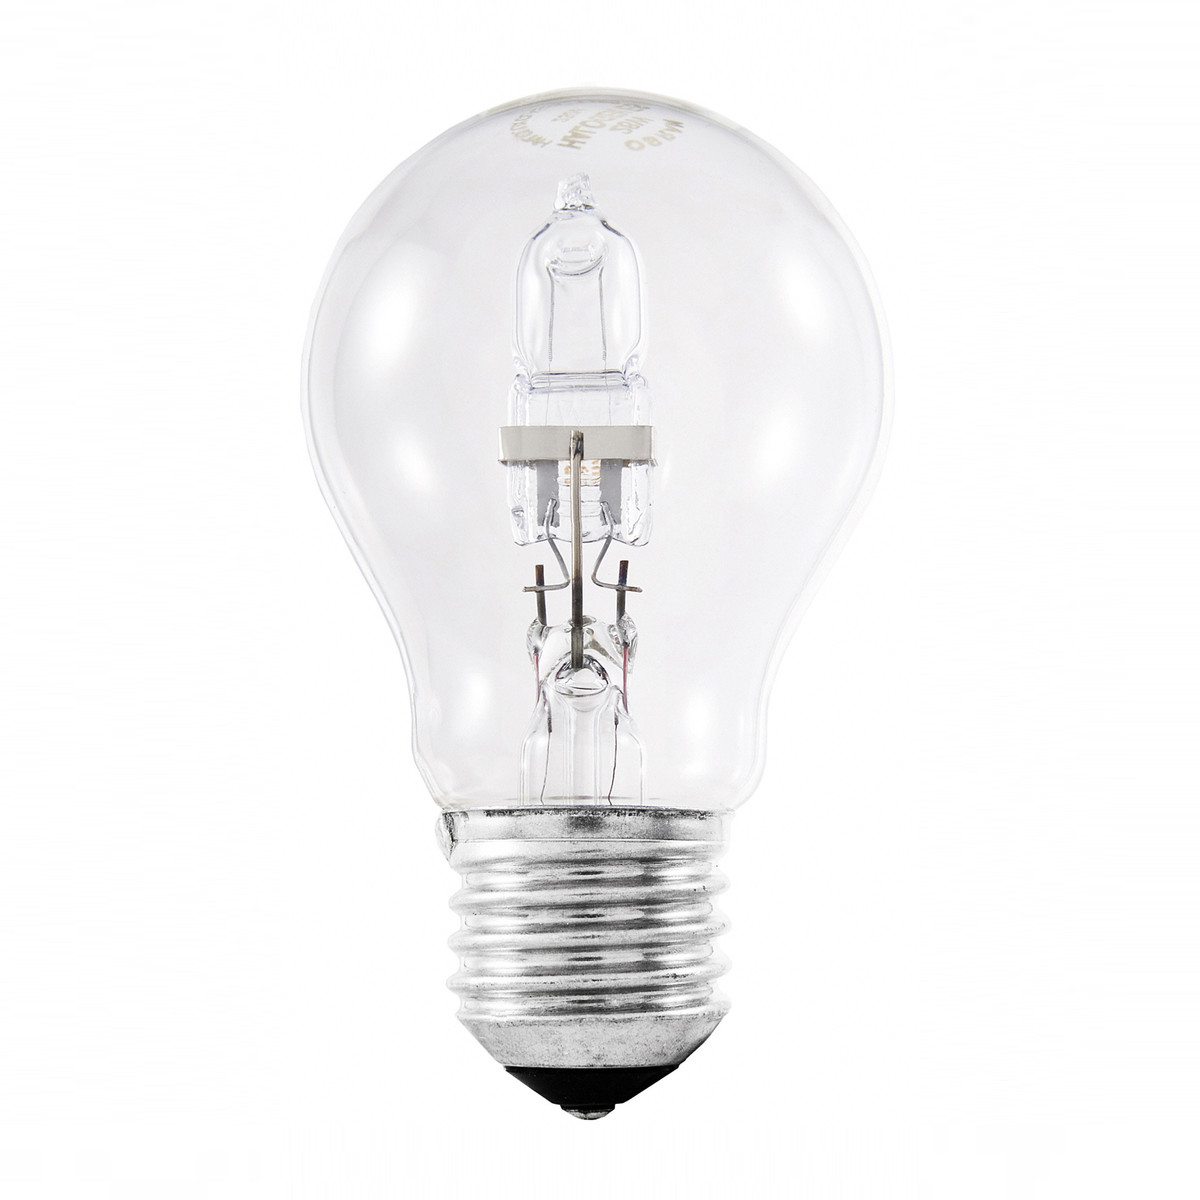 Lighting Bulb: Halogen Bulbs, LED Bulbs, CFL Bulbs; Alpharetta, Milton